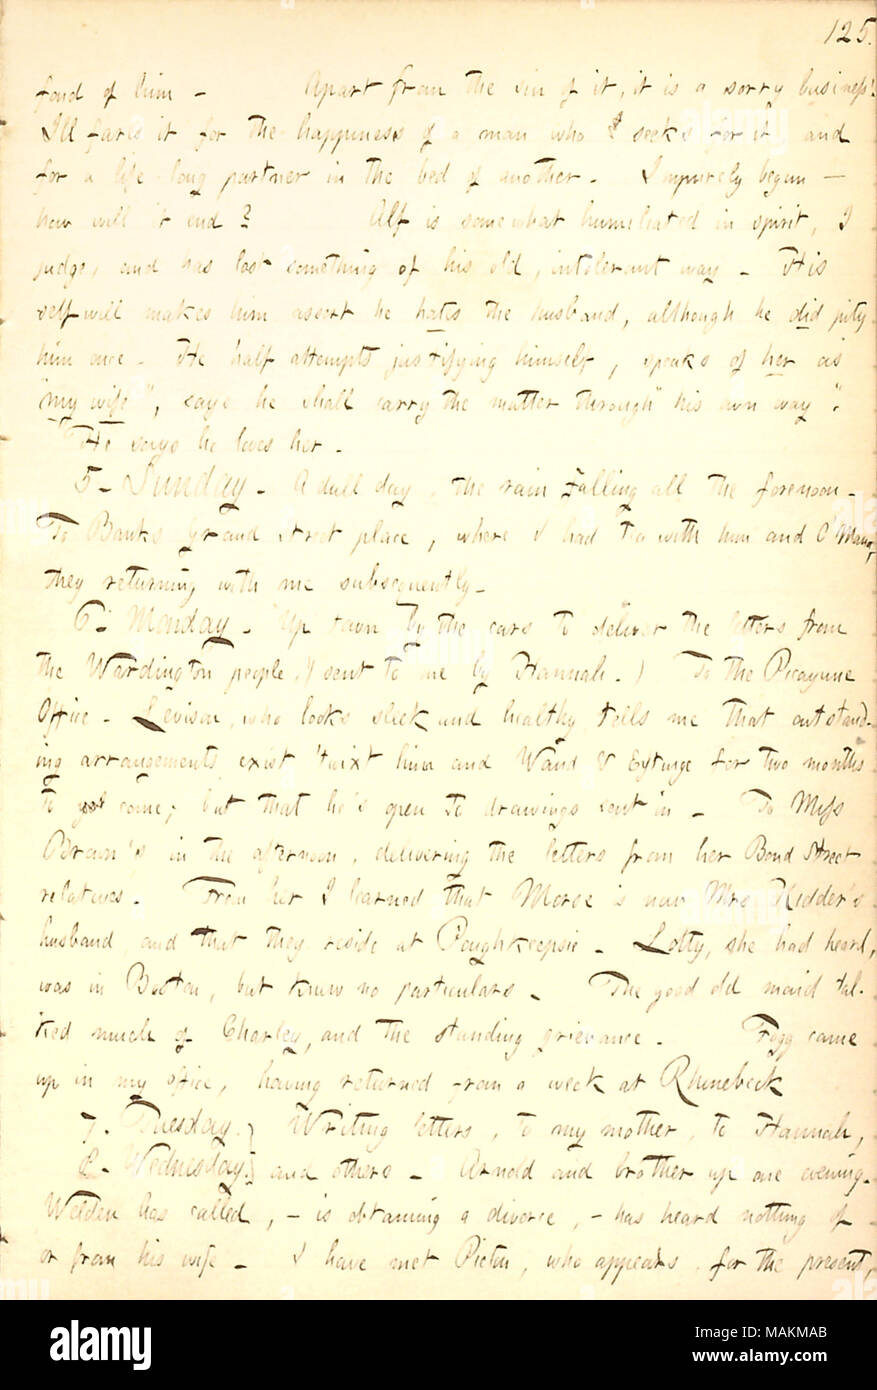 Describes a visit to Emma Brown, to deliver letters from her brother William and his wife in London.  Transcription: fond of him [Alfred Waud]. Apart from the sin of it, it is a sorry business! Ill fare it for the happiness of a man who seeks for it, and for a life-long partner [Mary Jewell Brainard] in the bed of another [Albert Brainard]. Impurely begun  ? how will it end? Alf is somewhat humiliated in spirit, I judge, and has lost something of his old, intolerant way. His self will makes him assert he hates the husband, although he did pity him once. He half attempts justifying himself, spe - Stock Image